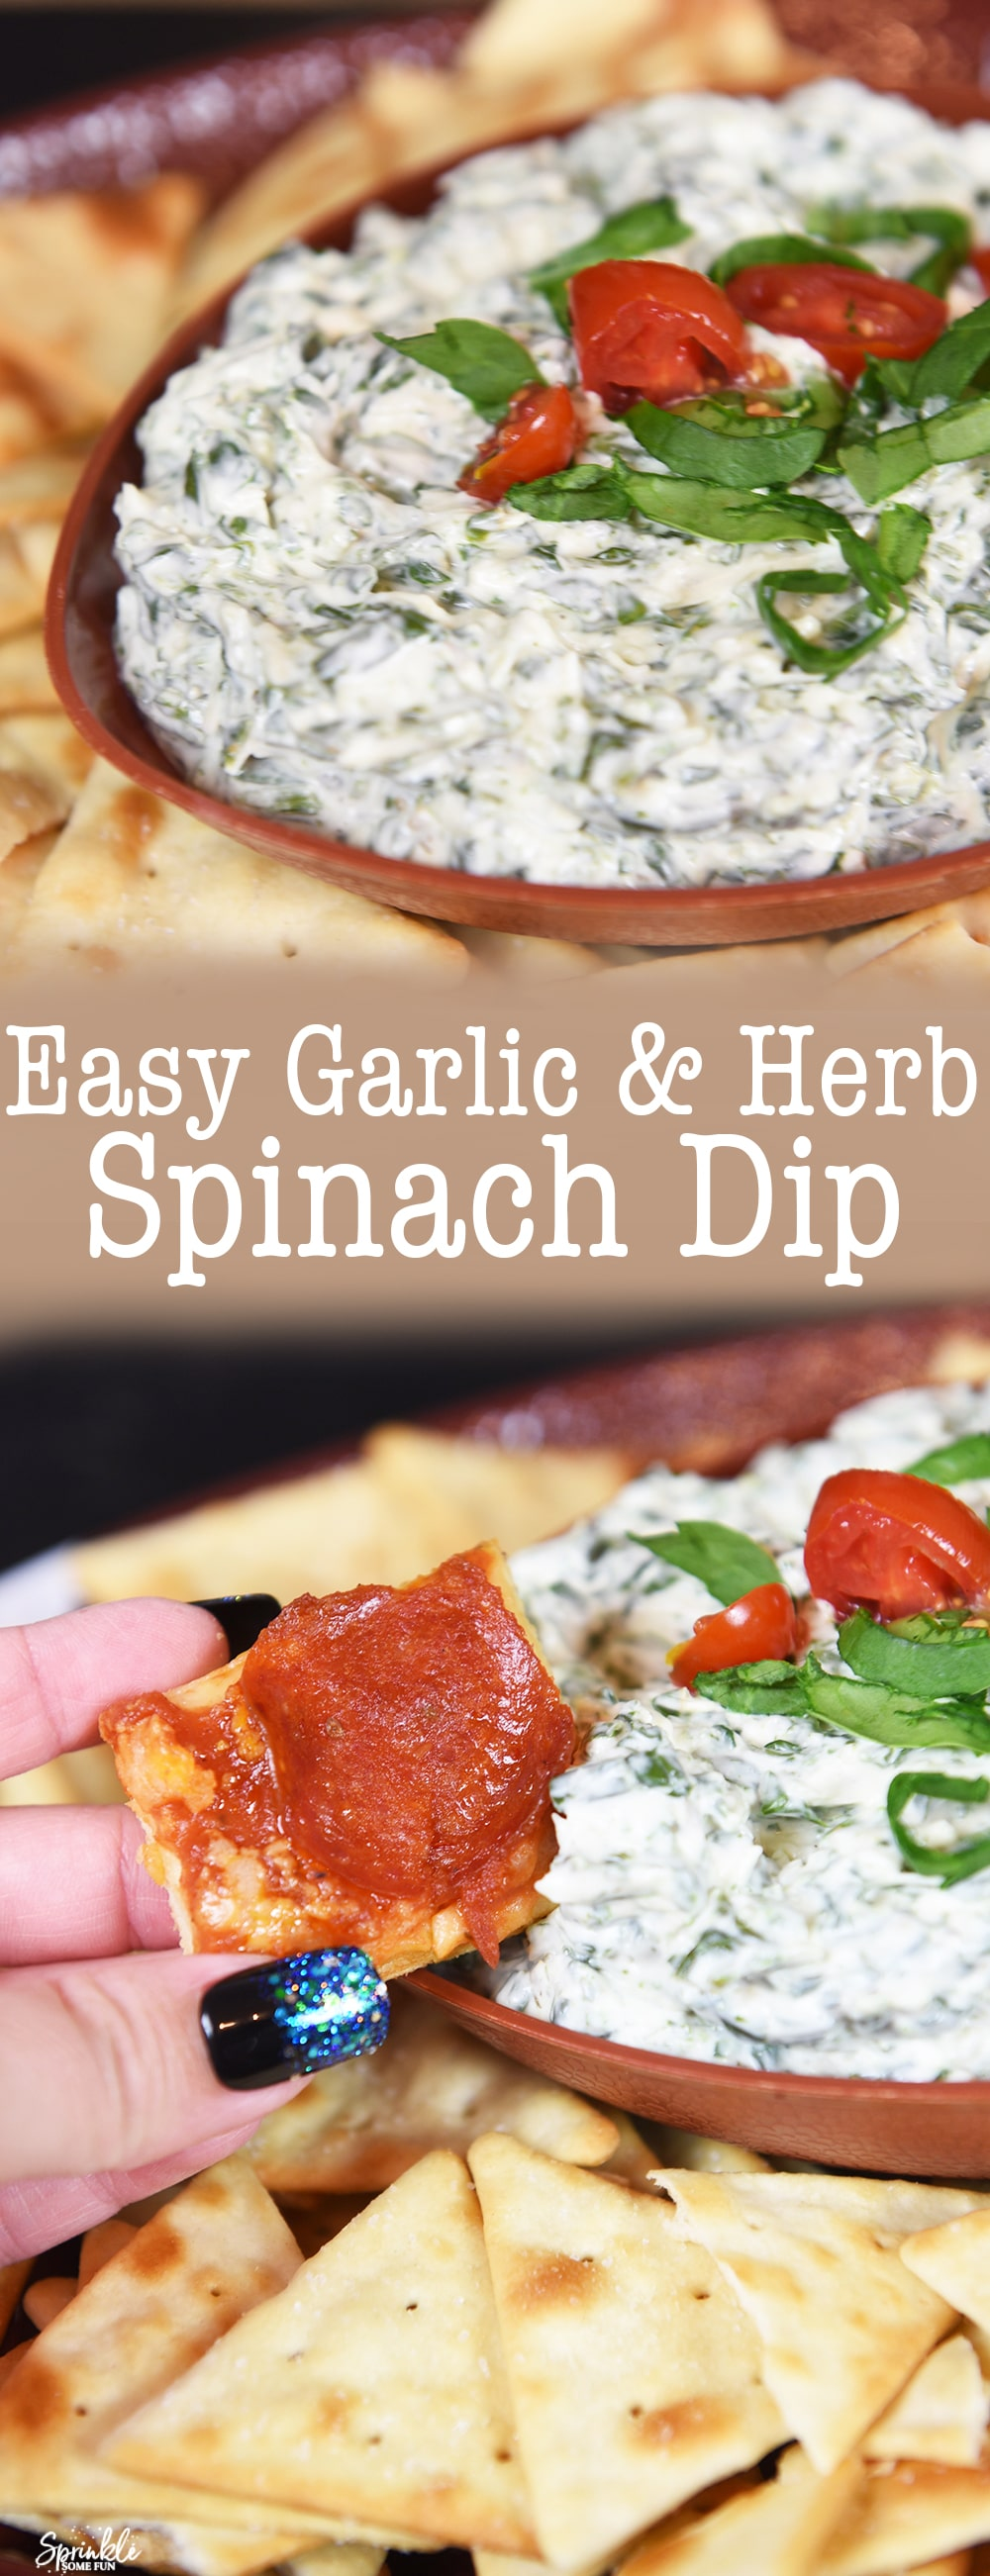 Easy Garlic & Herb Spinach Dip made in 10 minutes!